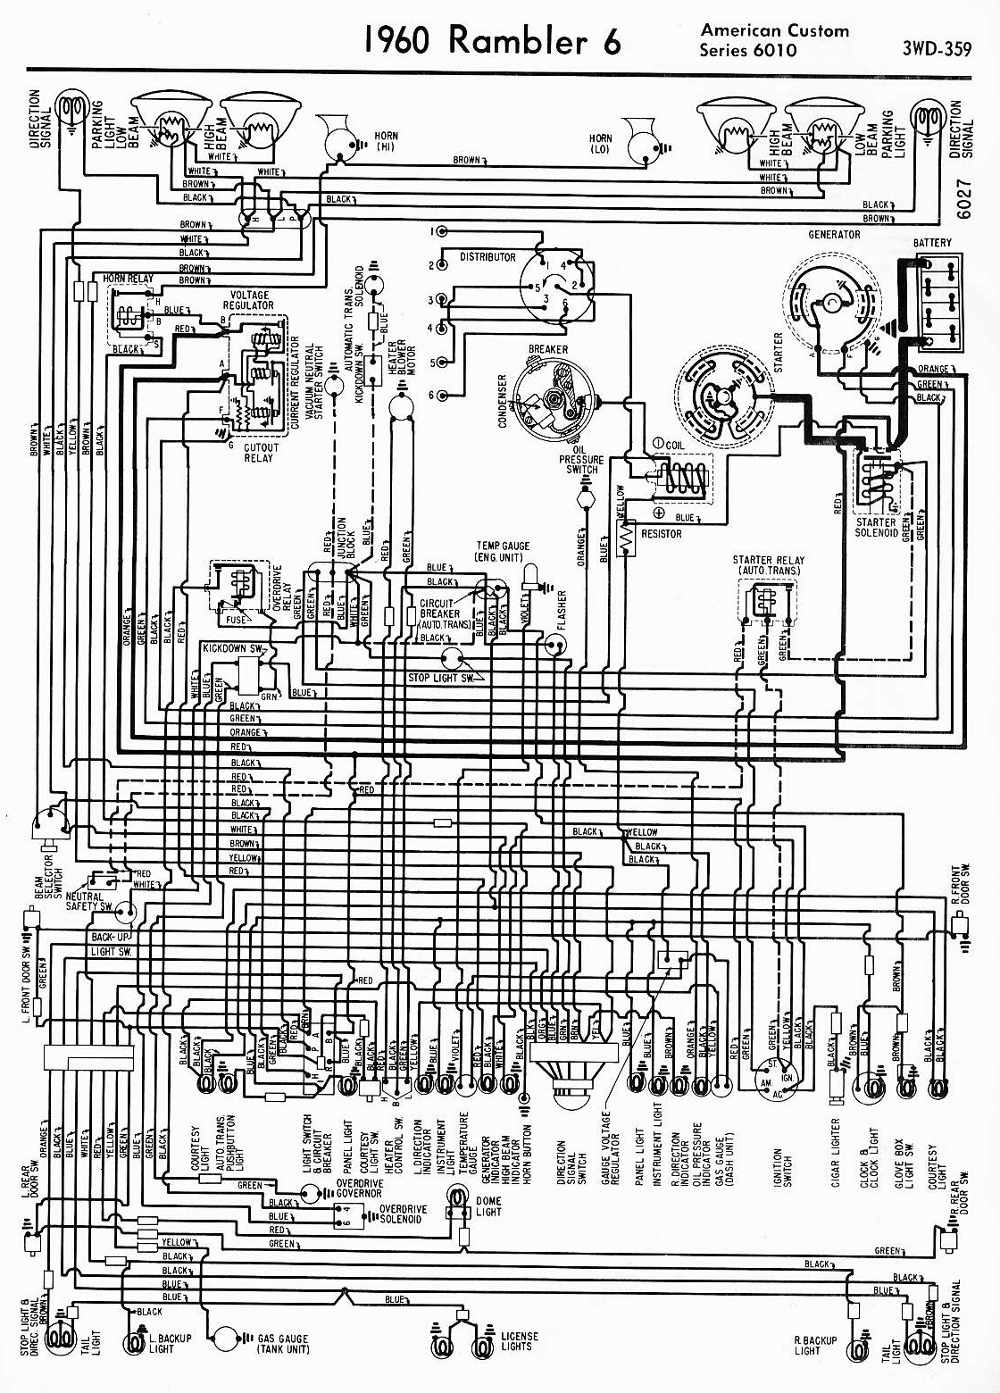 Amc Wiring Diagram Schematic Diagrams Hornet 1967 Rambler American Trusted Snatch Block Car Manuals